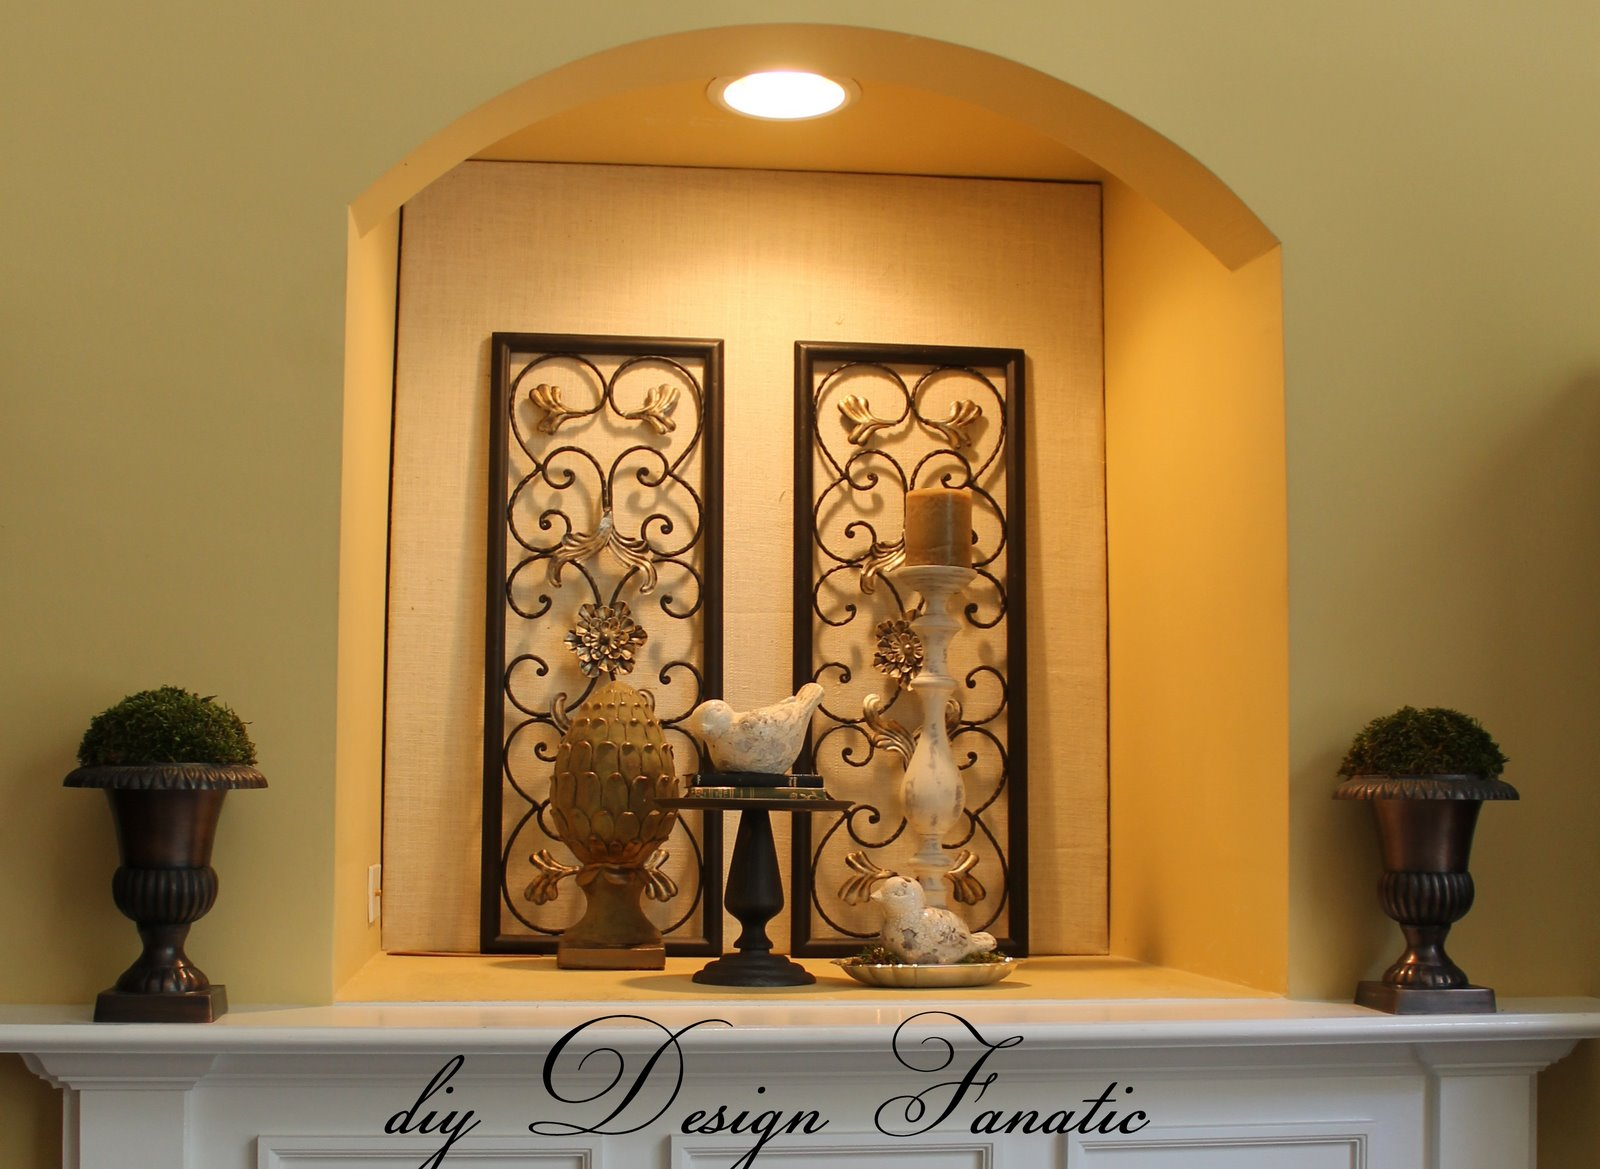 Diy design fanatic my new niche for How to decorate an alcove in a wall